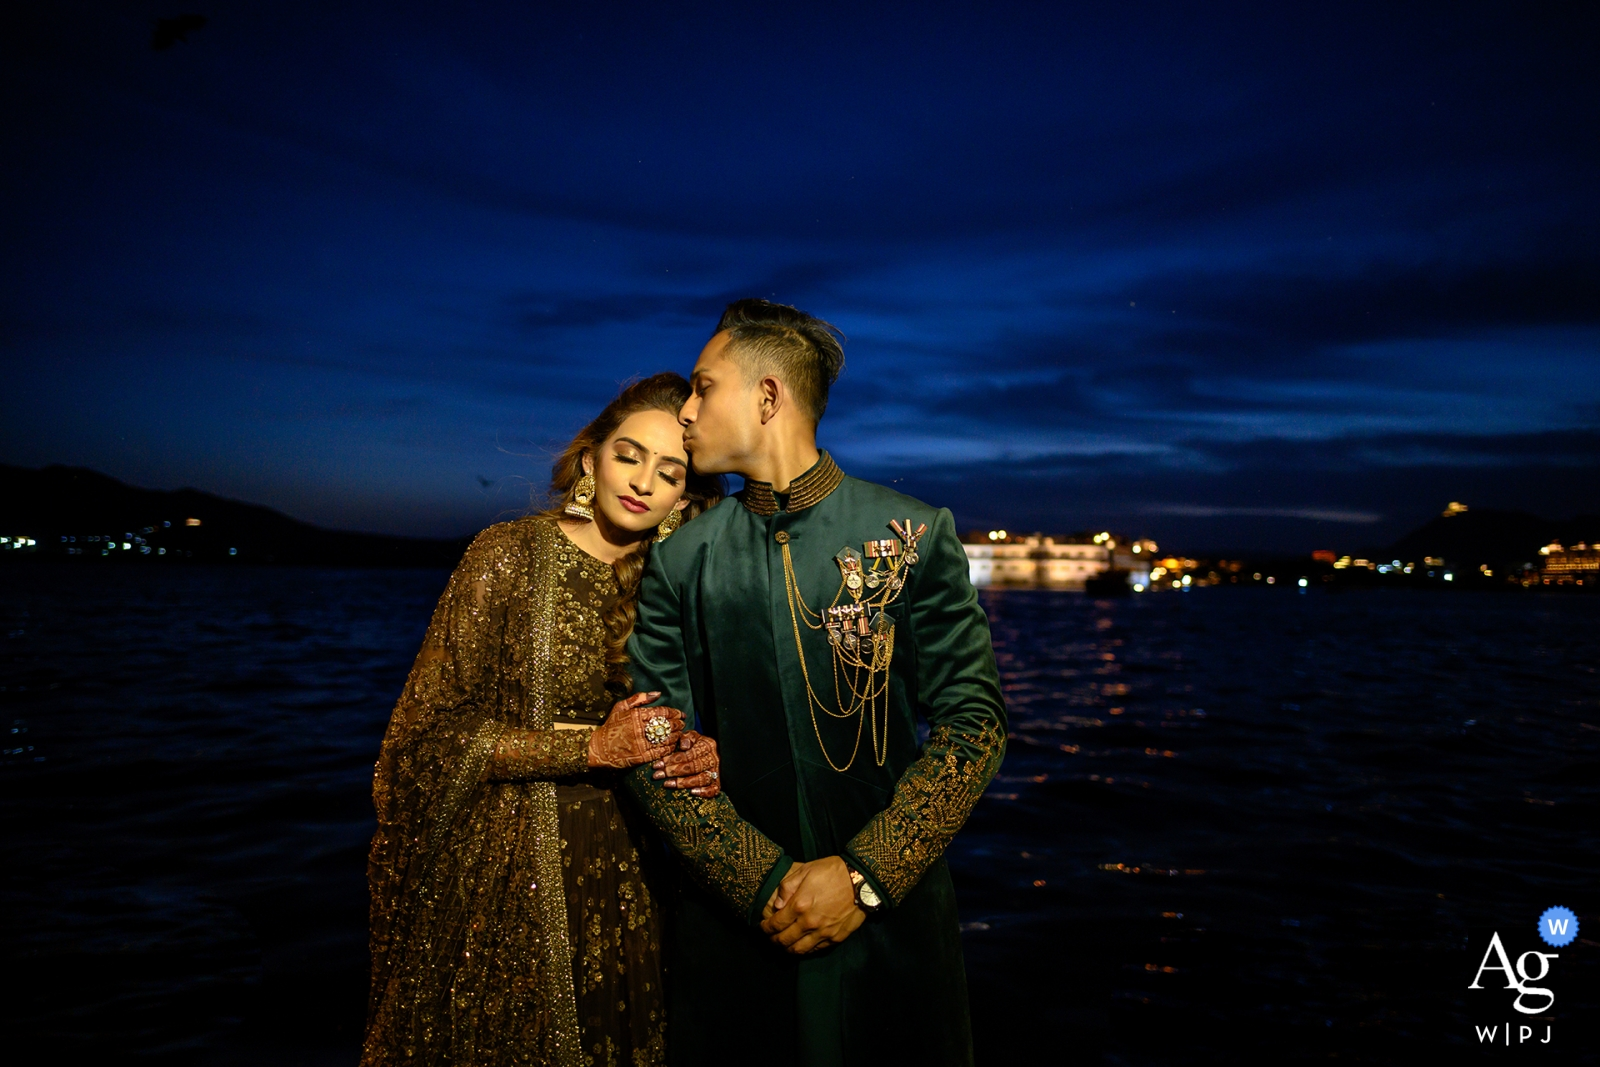 Ankita Asthana is an artistic wedding photographer for Maharashtra